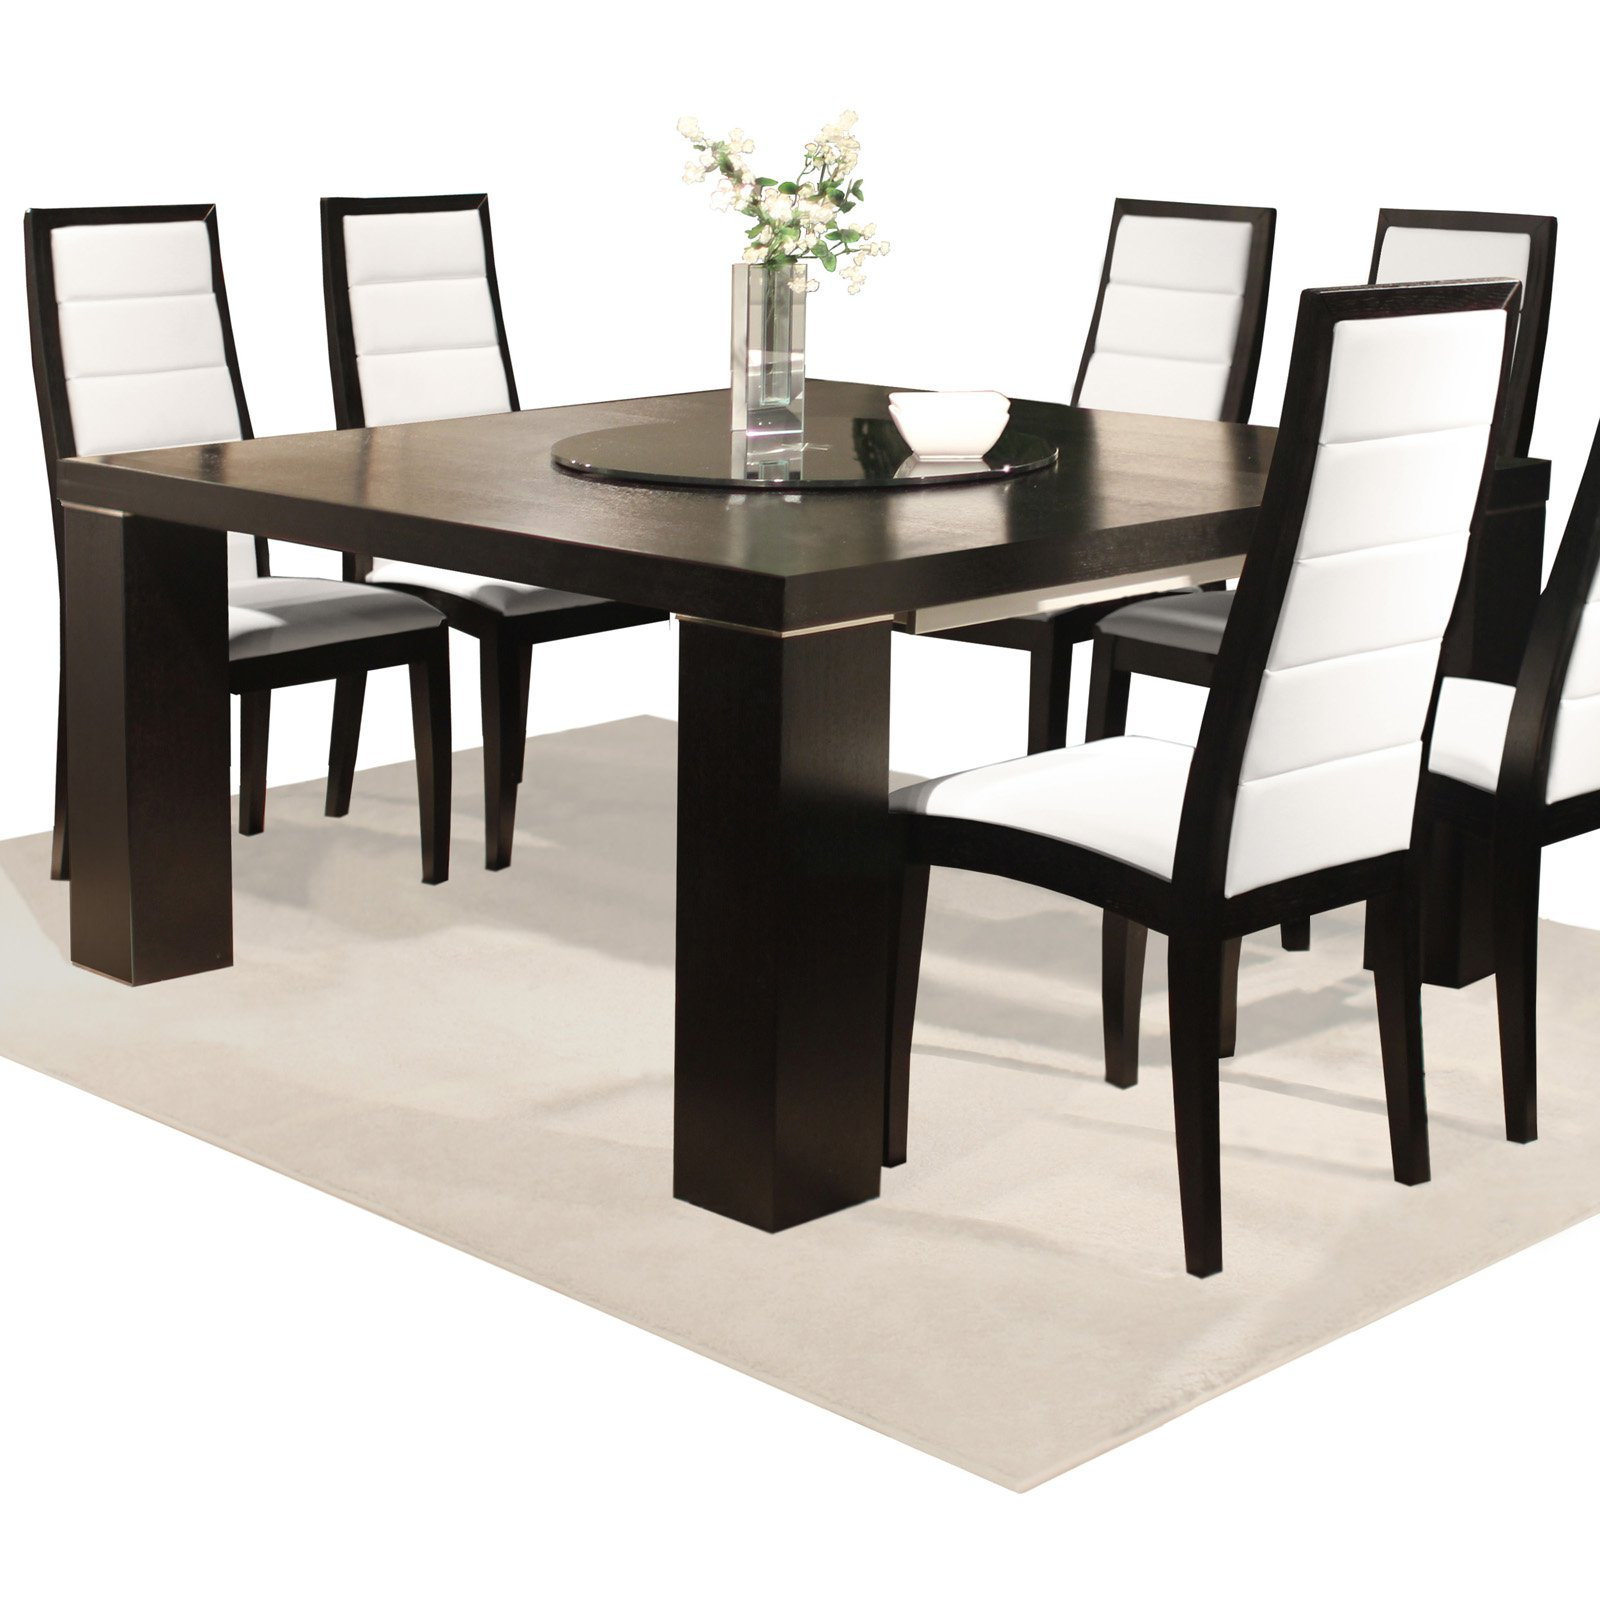 Jordan Square Extension Dining Table - Wenge